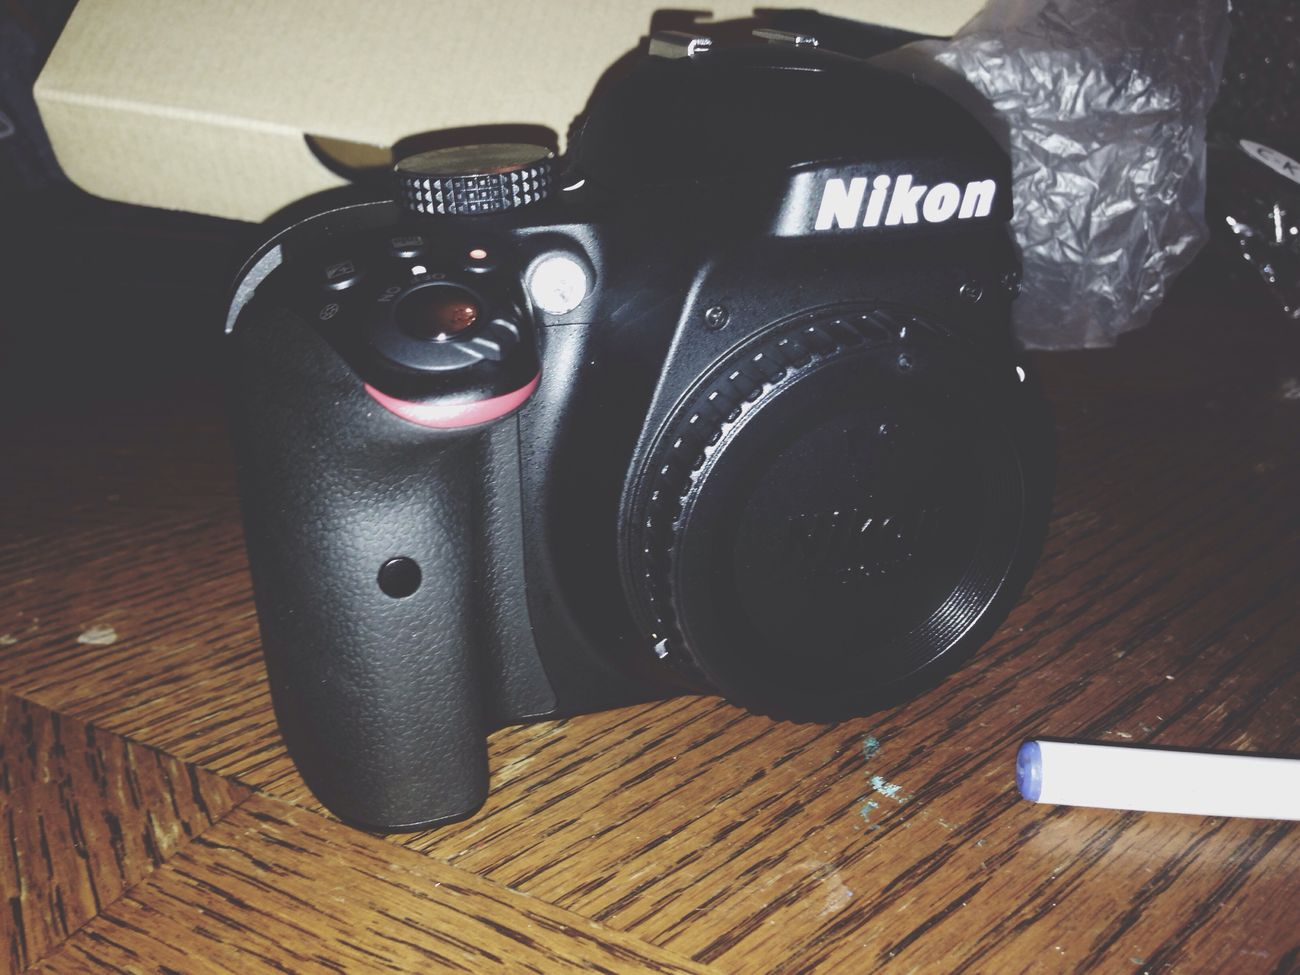 Guess who won't be shooting with her phone anymore 😍😈😈 Welcome me to the world of true photography my great people Nikon